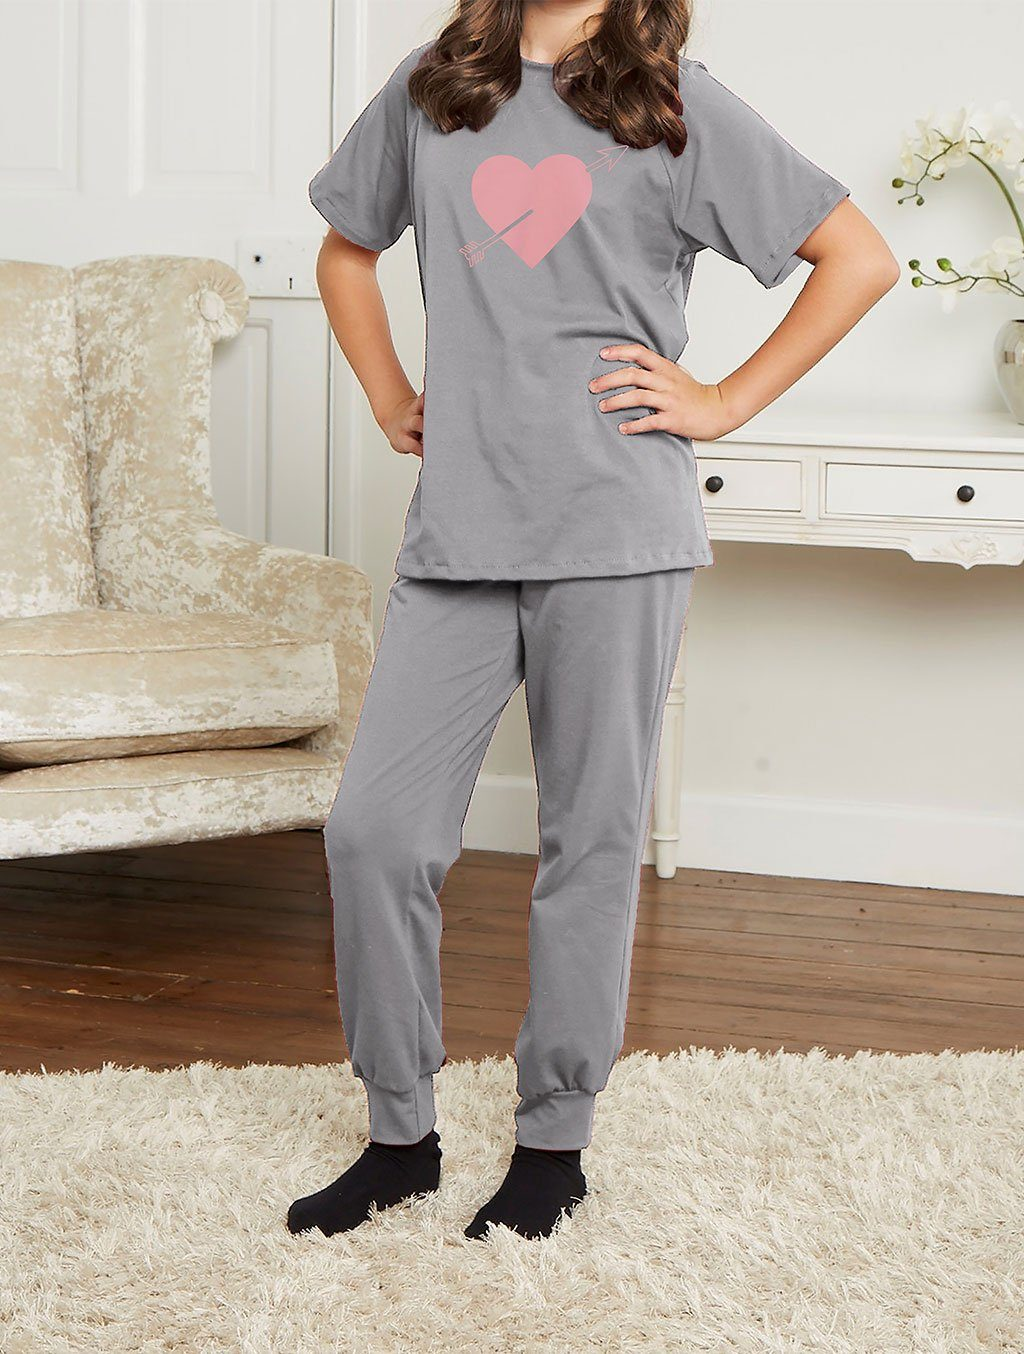 LADIES GREY LOUNGEWEAR LW-024 LOUNGEWEAR FASSTIGIR